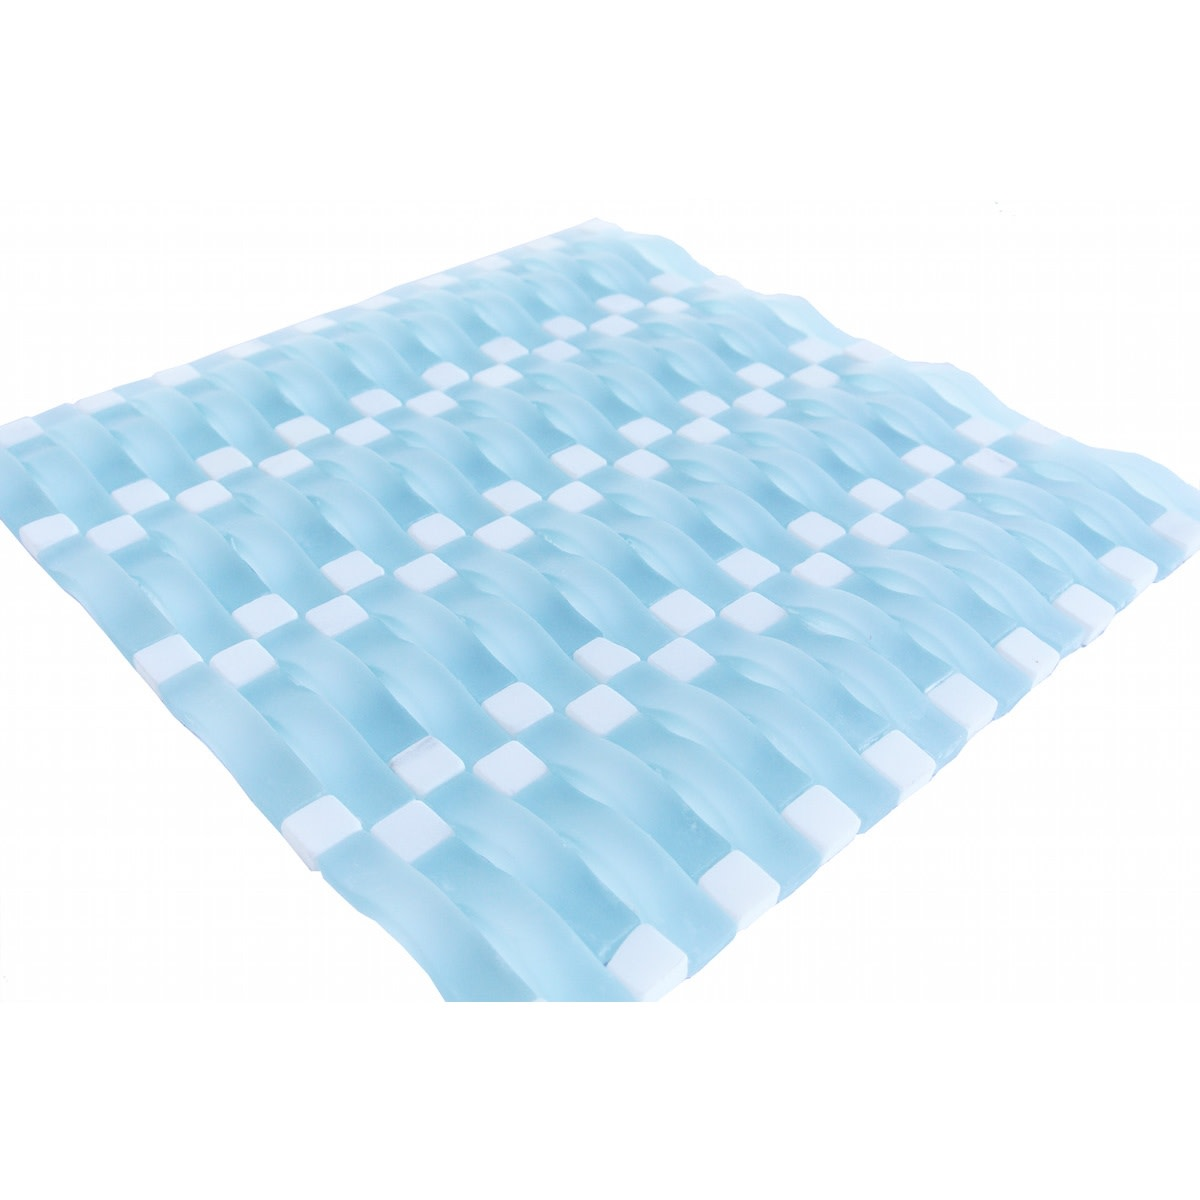 "Abolos- Wave 0.63"" X 2.5"" Glass Mosaic Tile in Artic Blue Matte (8.4sqft / 8pc Box)"